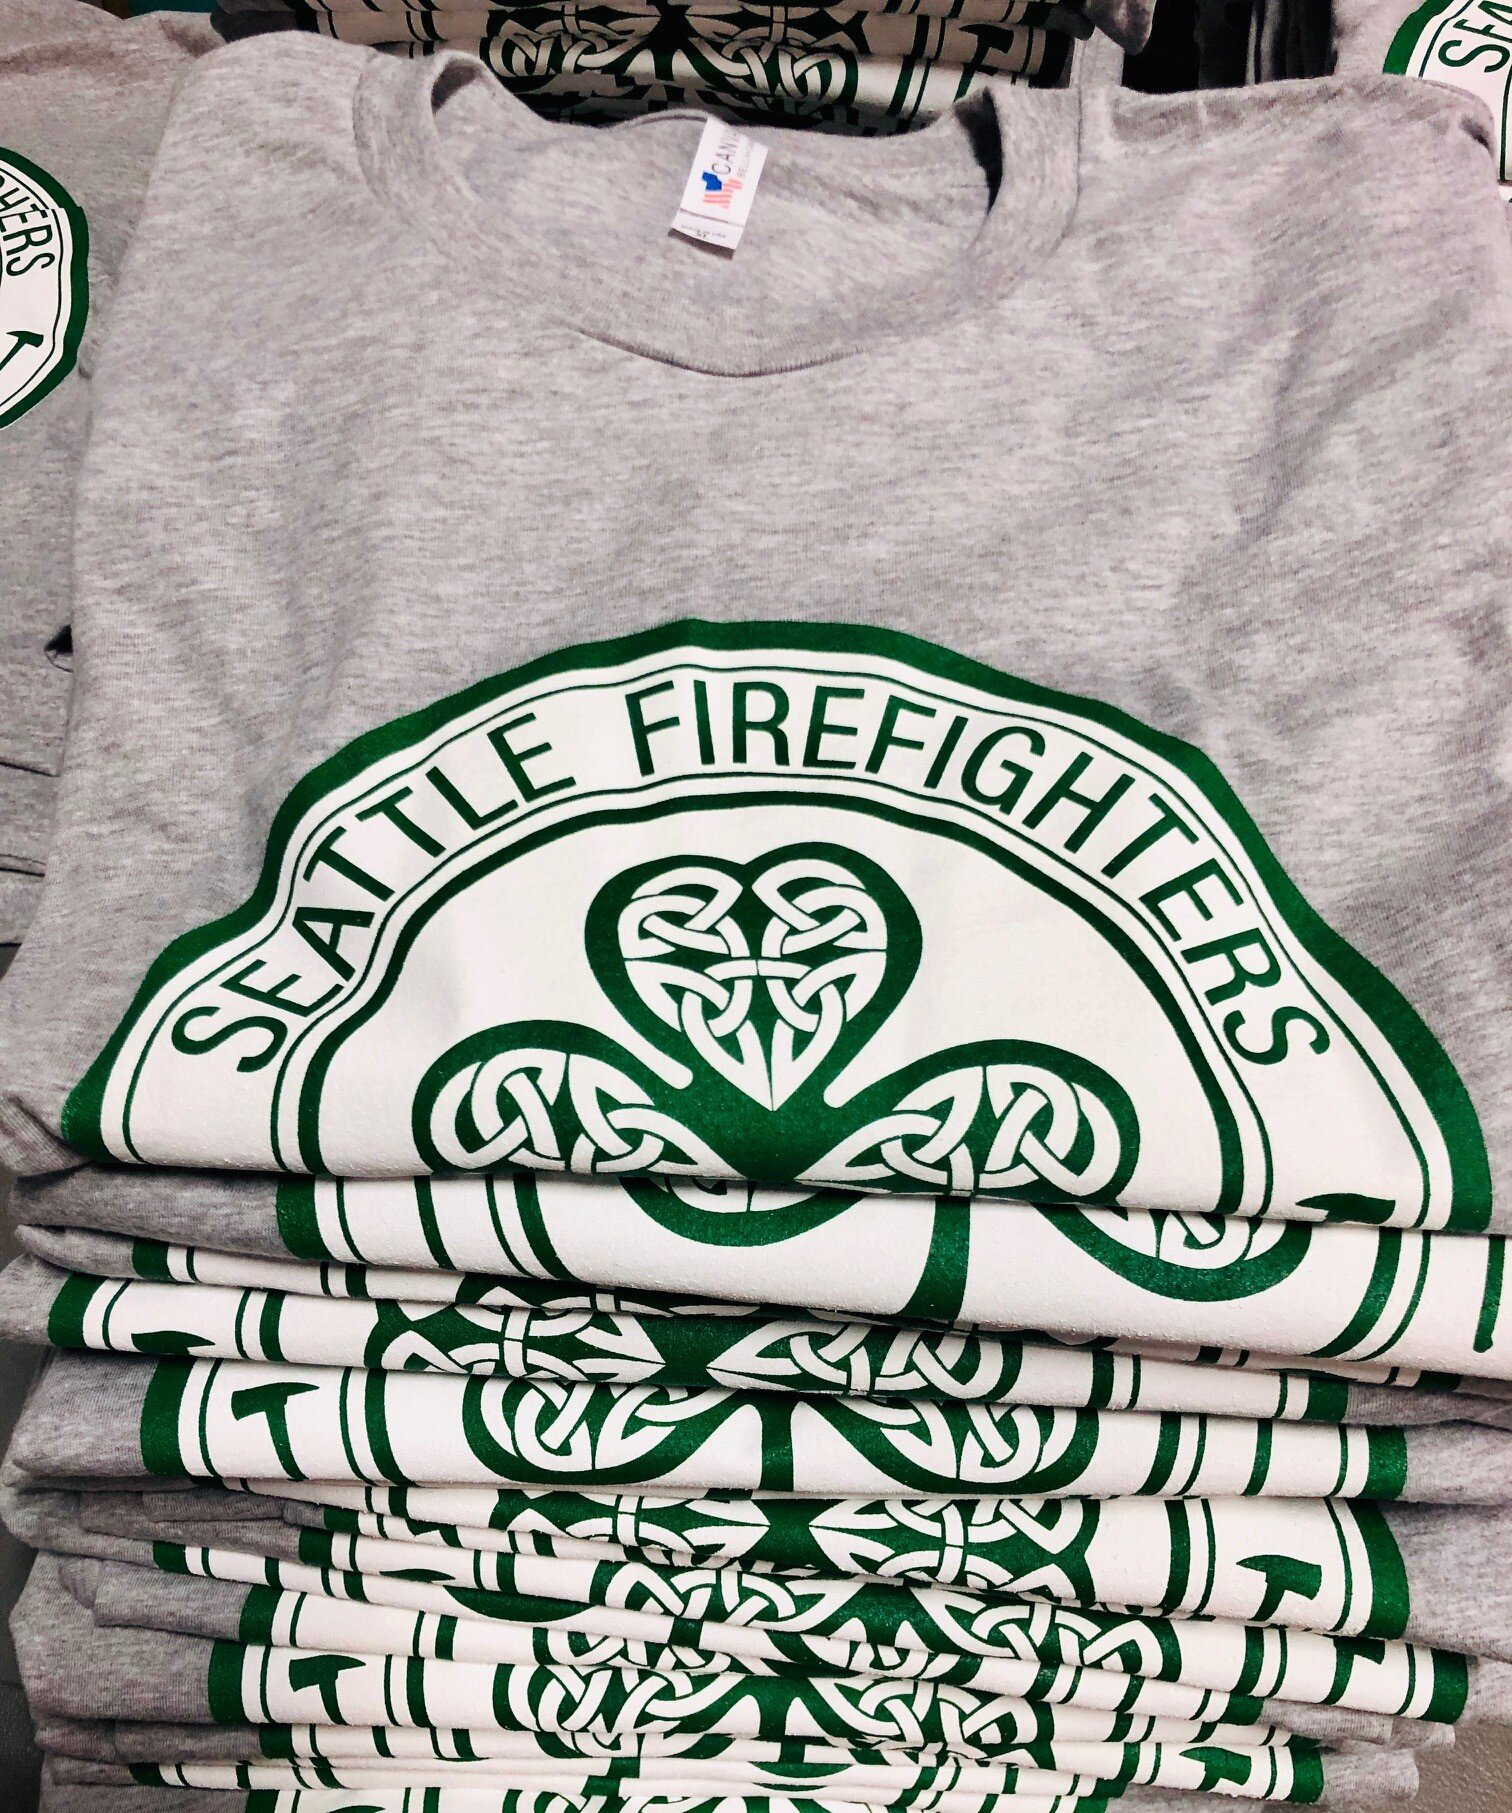 logounltd_laser_etching_embroidery_screen_printing_apparel_uniform_custom_tshirts_t_shirt_kirkland_bellevue_seattle_redmond_woodinville_branded_merchandise_promotional_products_logo_unltd_firefighters_pipes_drums (1).jpg